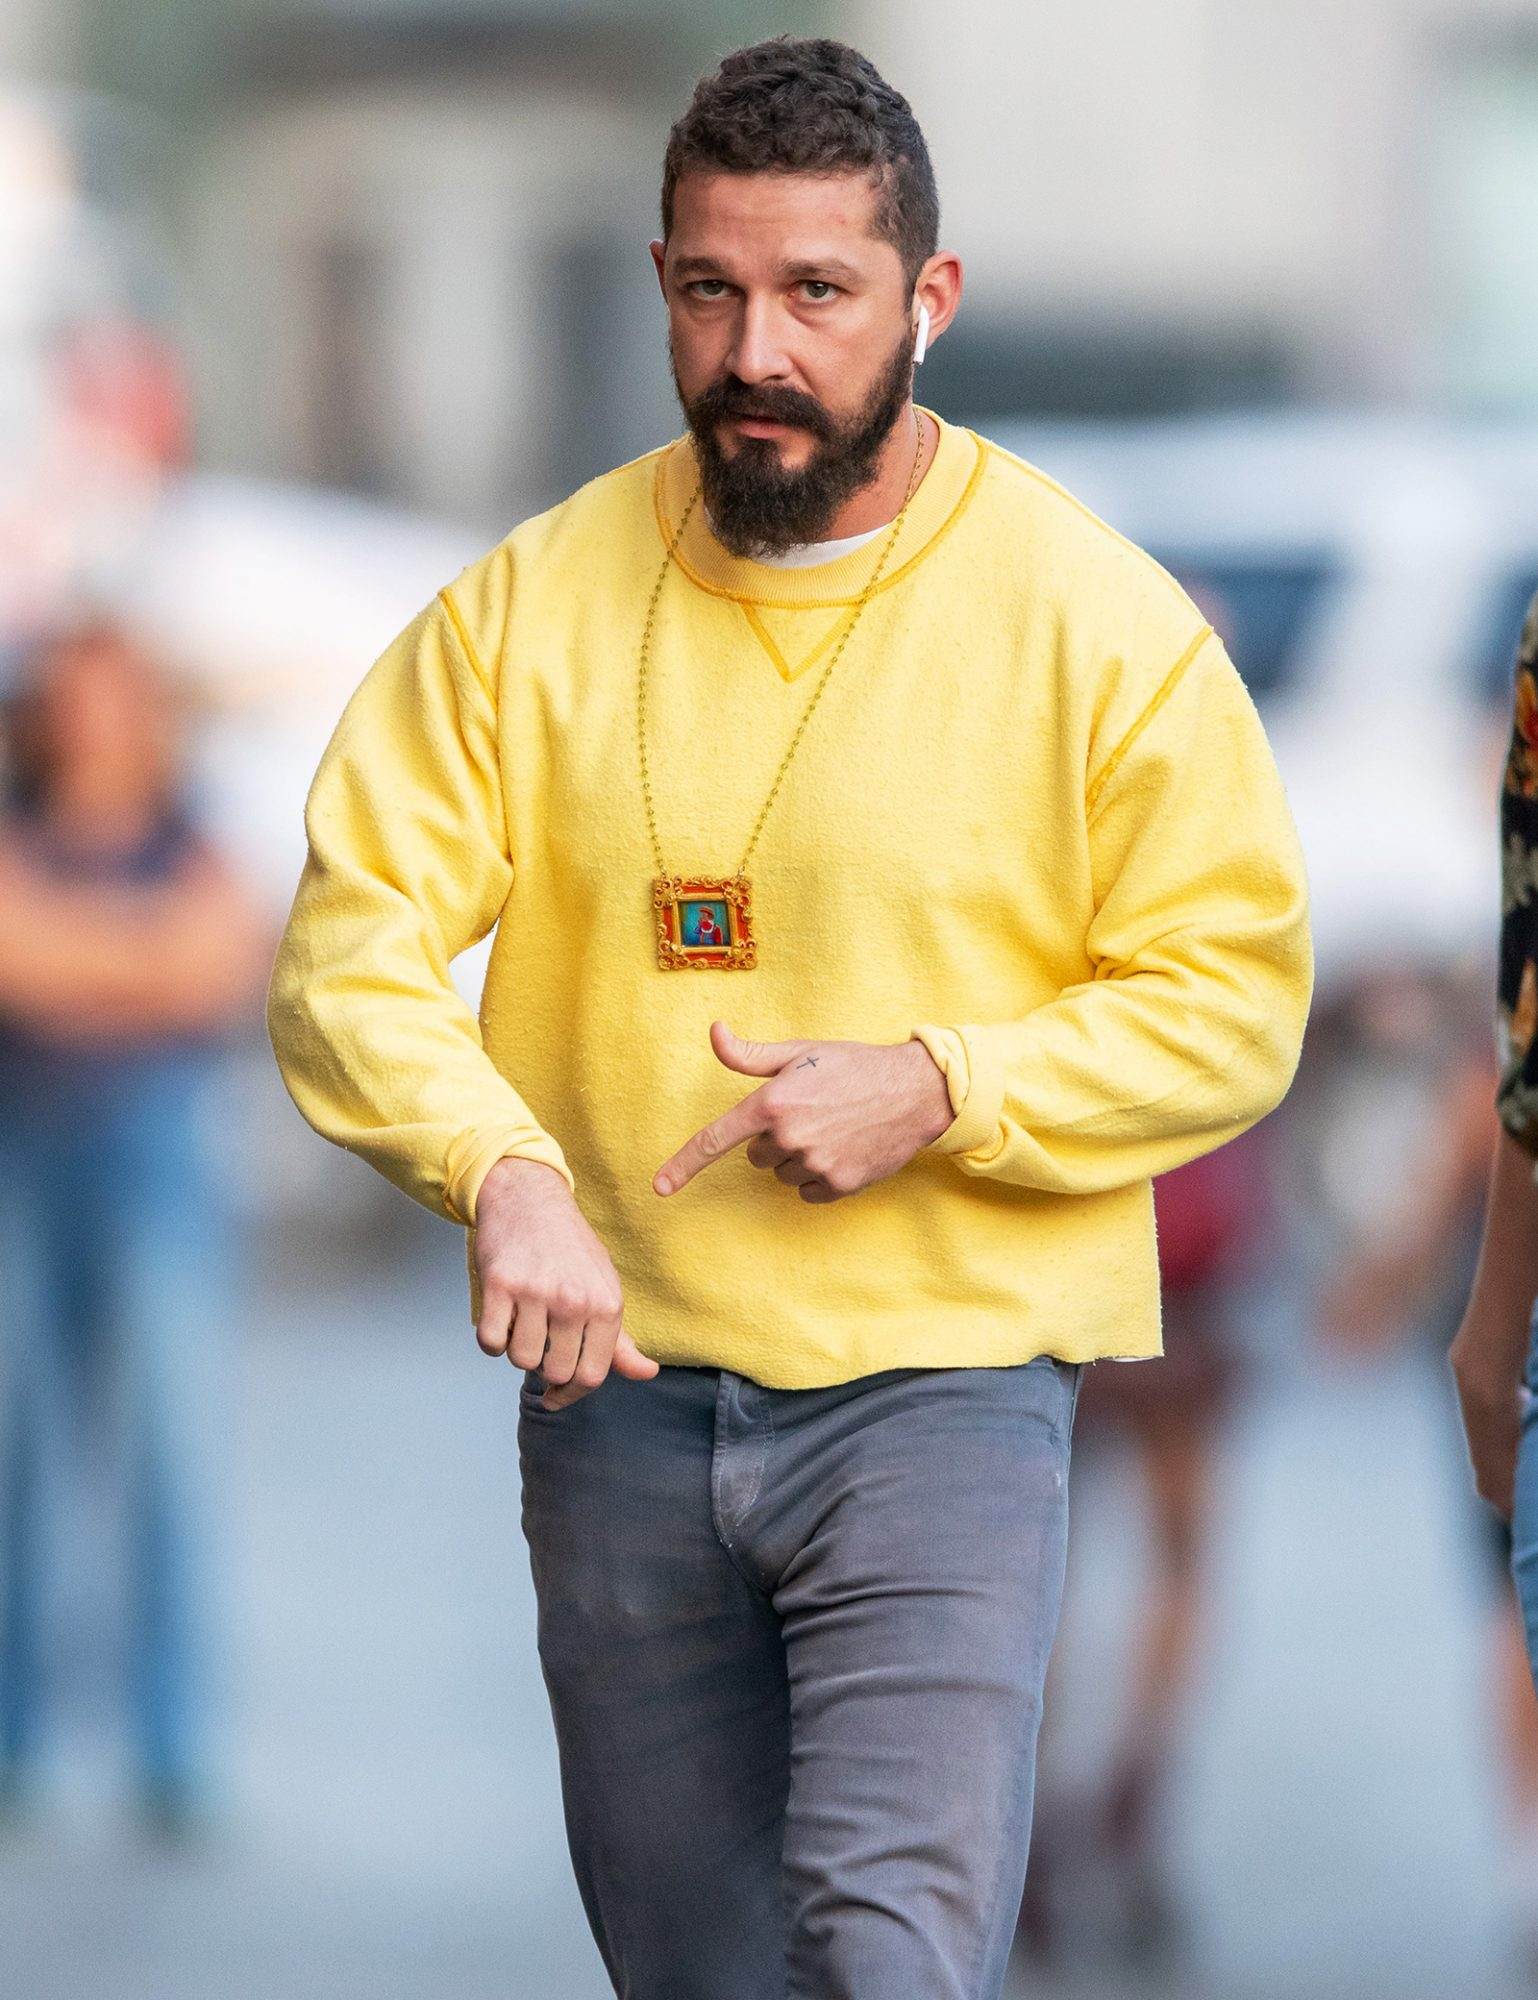 Shia LaBeouf is seen at 'Jimmy Kimmel Live' on November 06, 2019 in Los Angeles